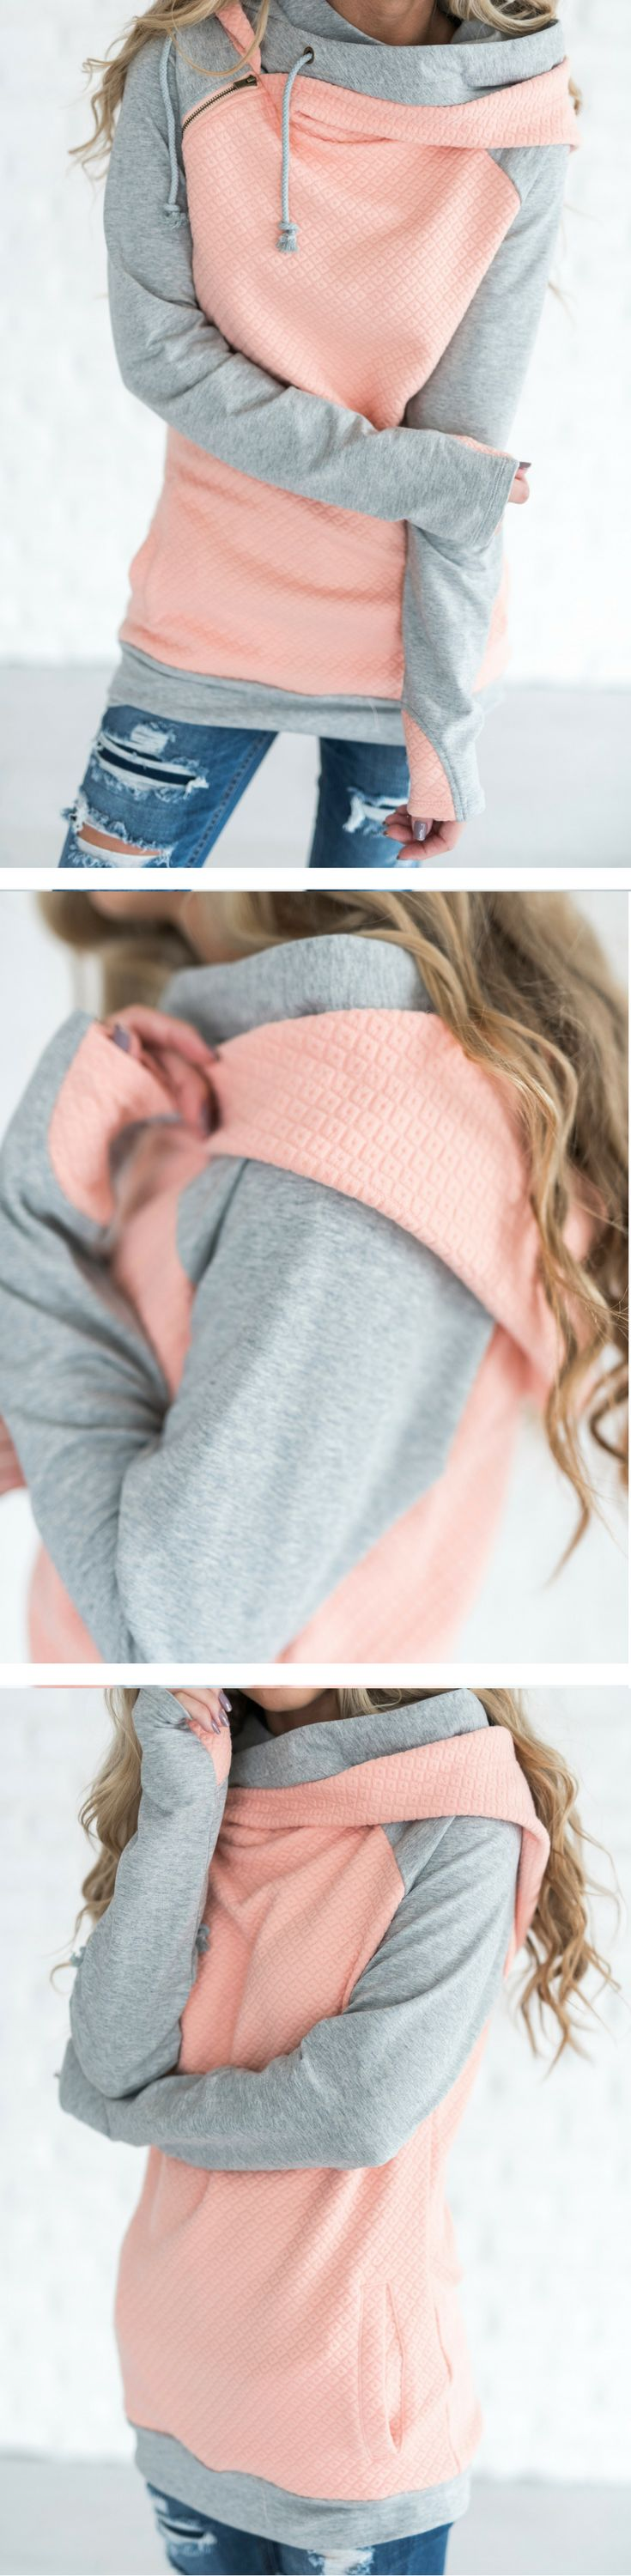 Our most popular piece and for good reason! This hoodie is the cutest way to stay comfortable and cozy while remaining dang cute!